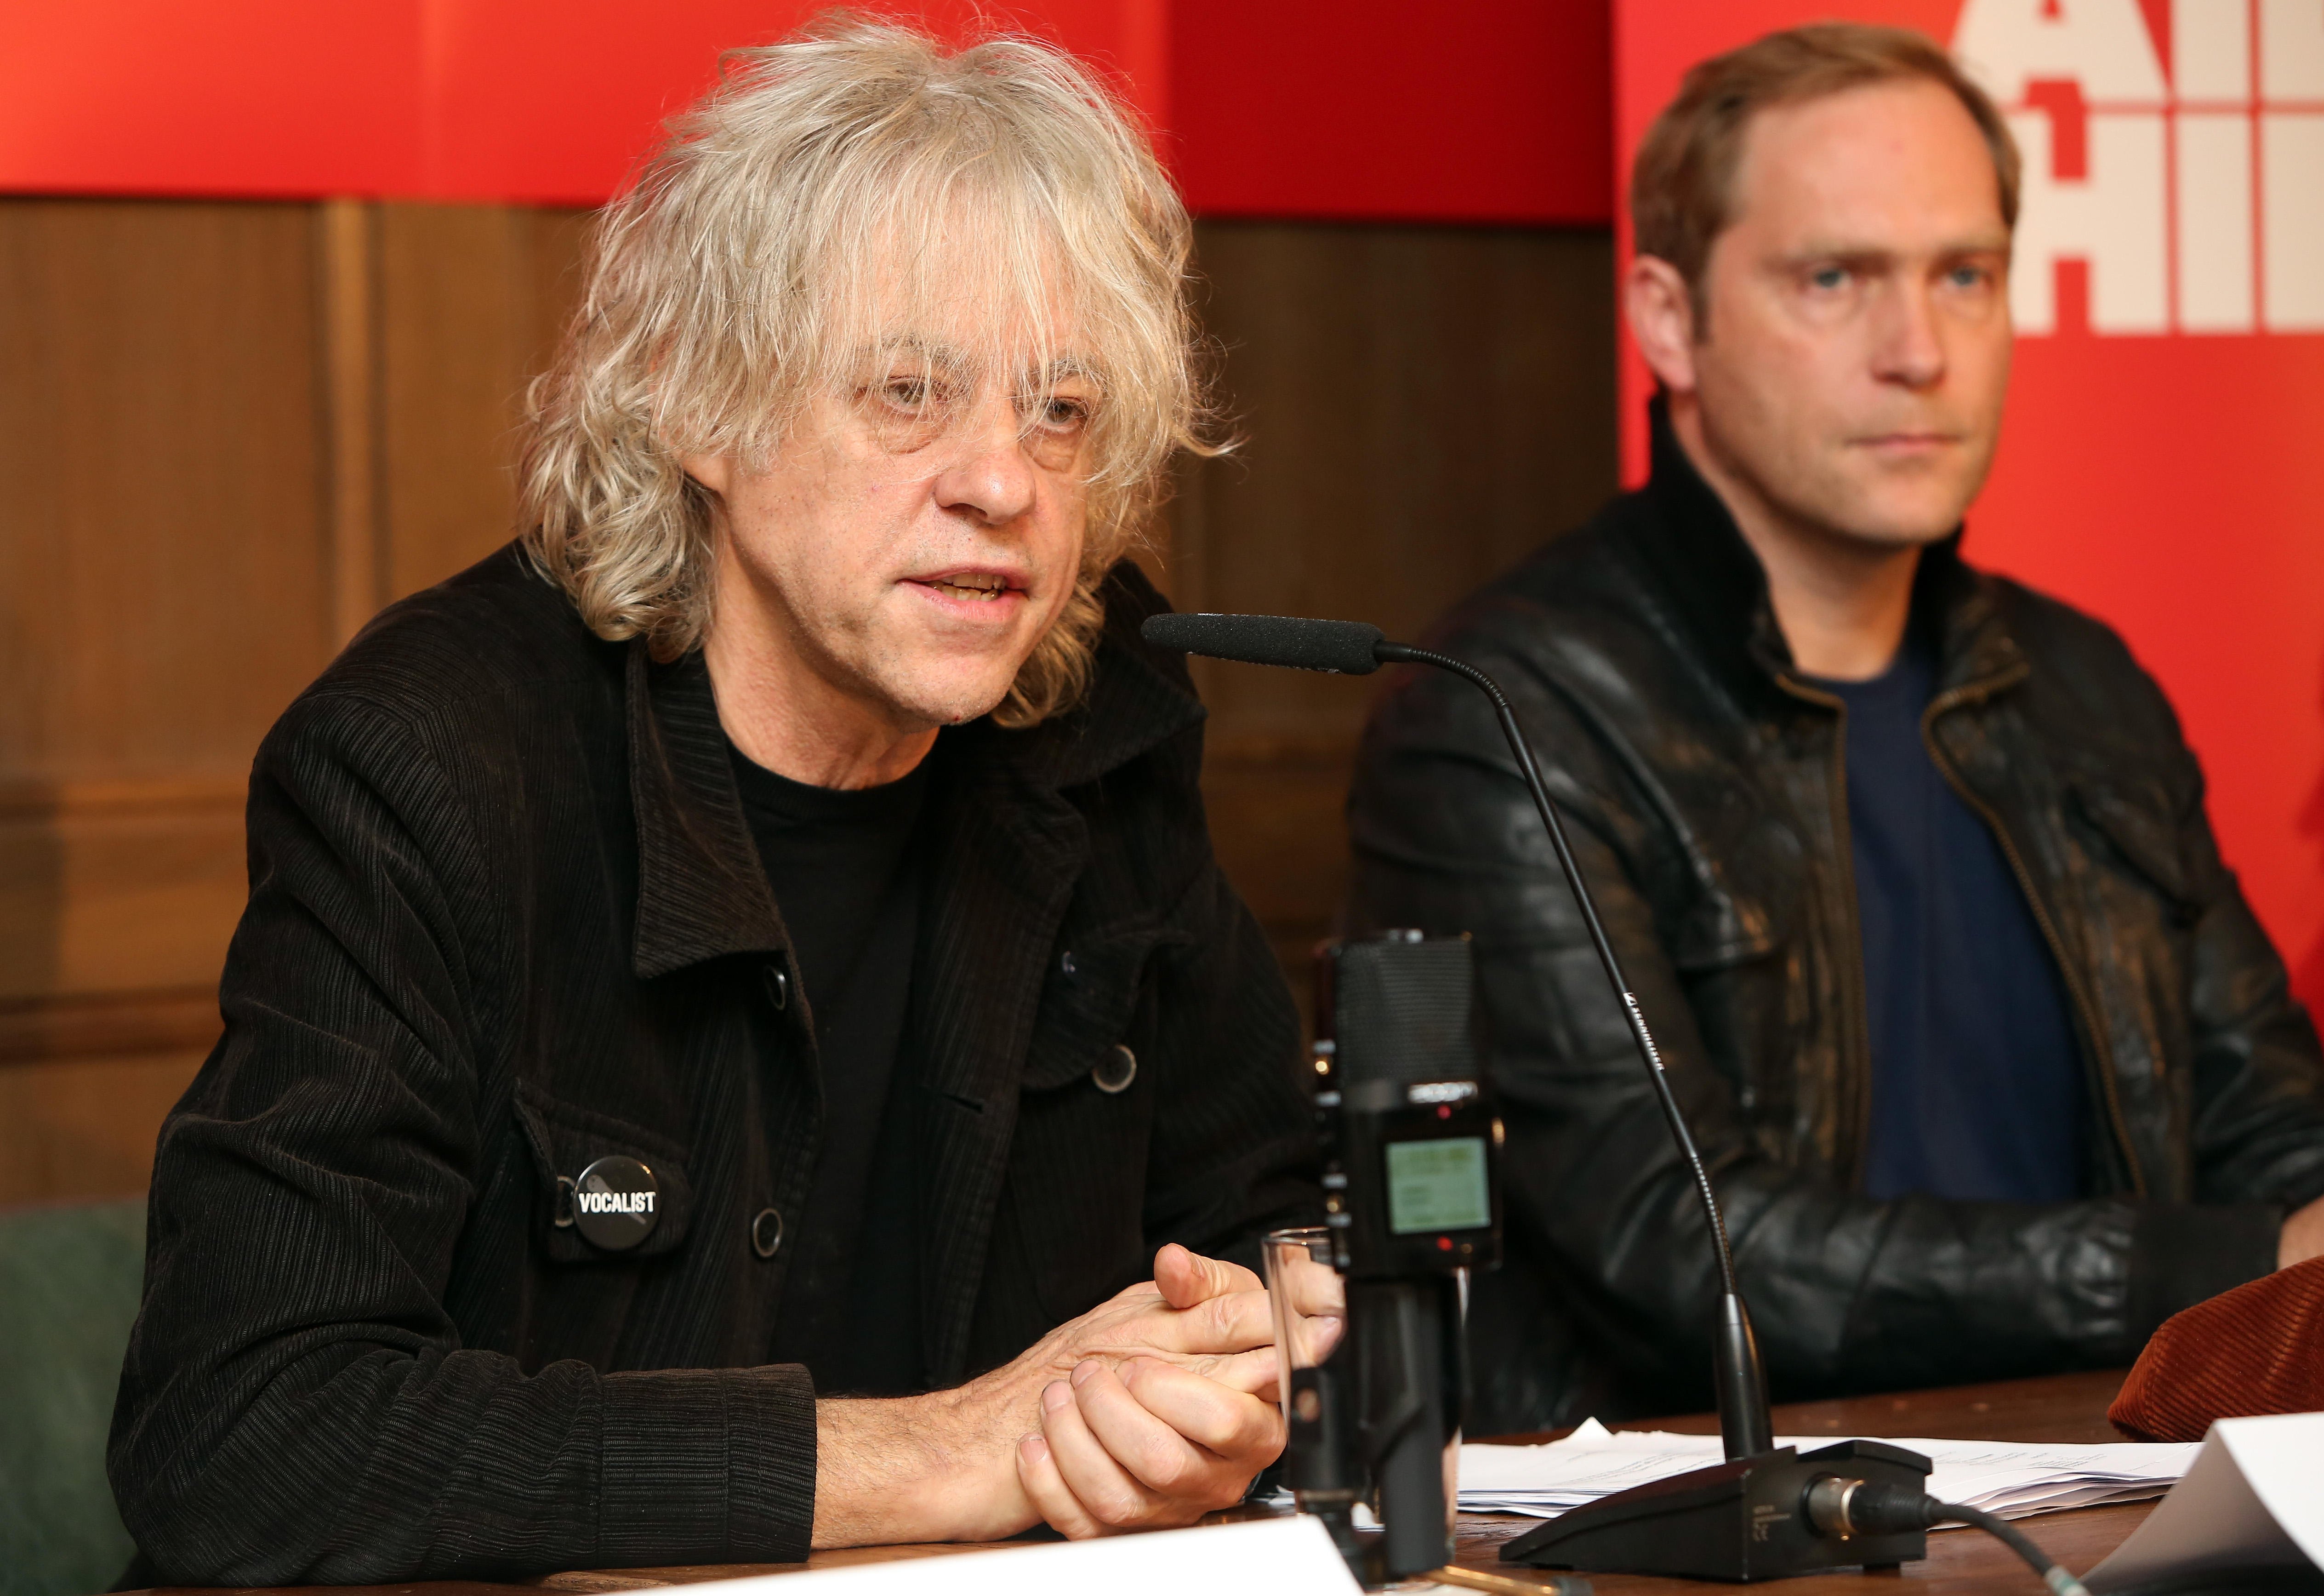 BERLIN, GERMANY - NOVEMBER 13: Irish Singer Bob Geldof (L) and German Singer Thees Uhlmann attend a press conference about th